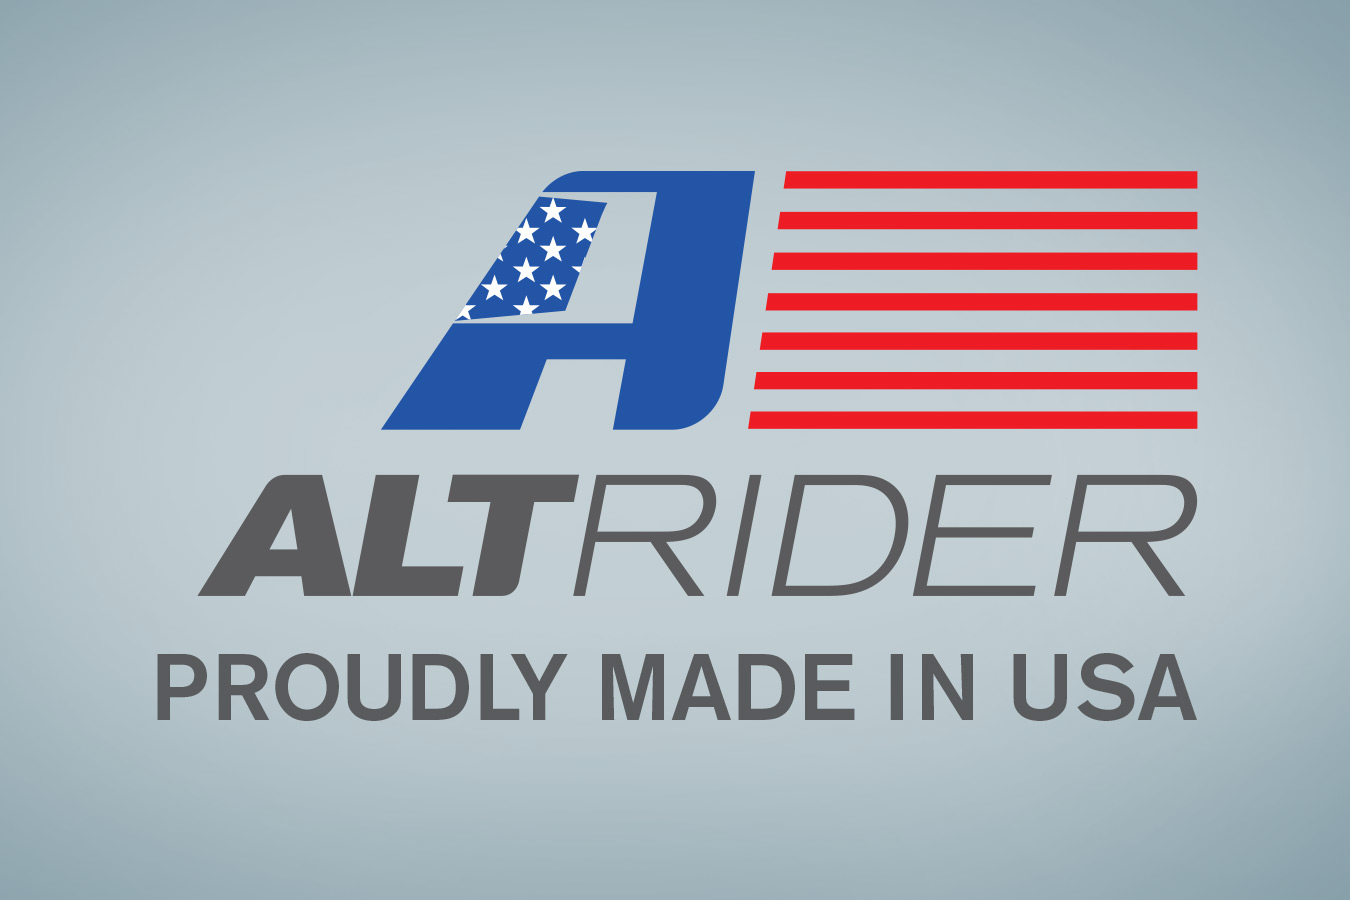 AltRider Made in USA